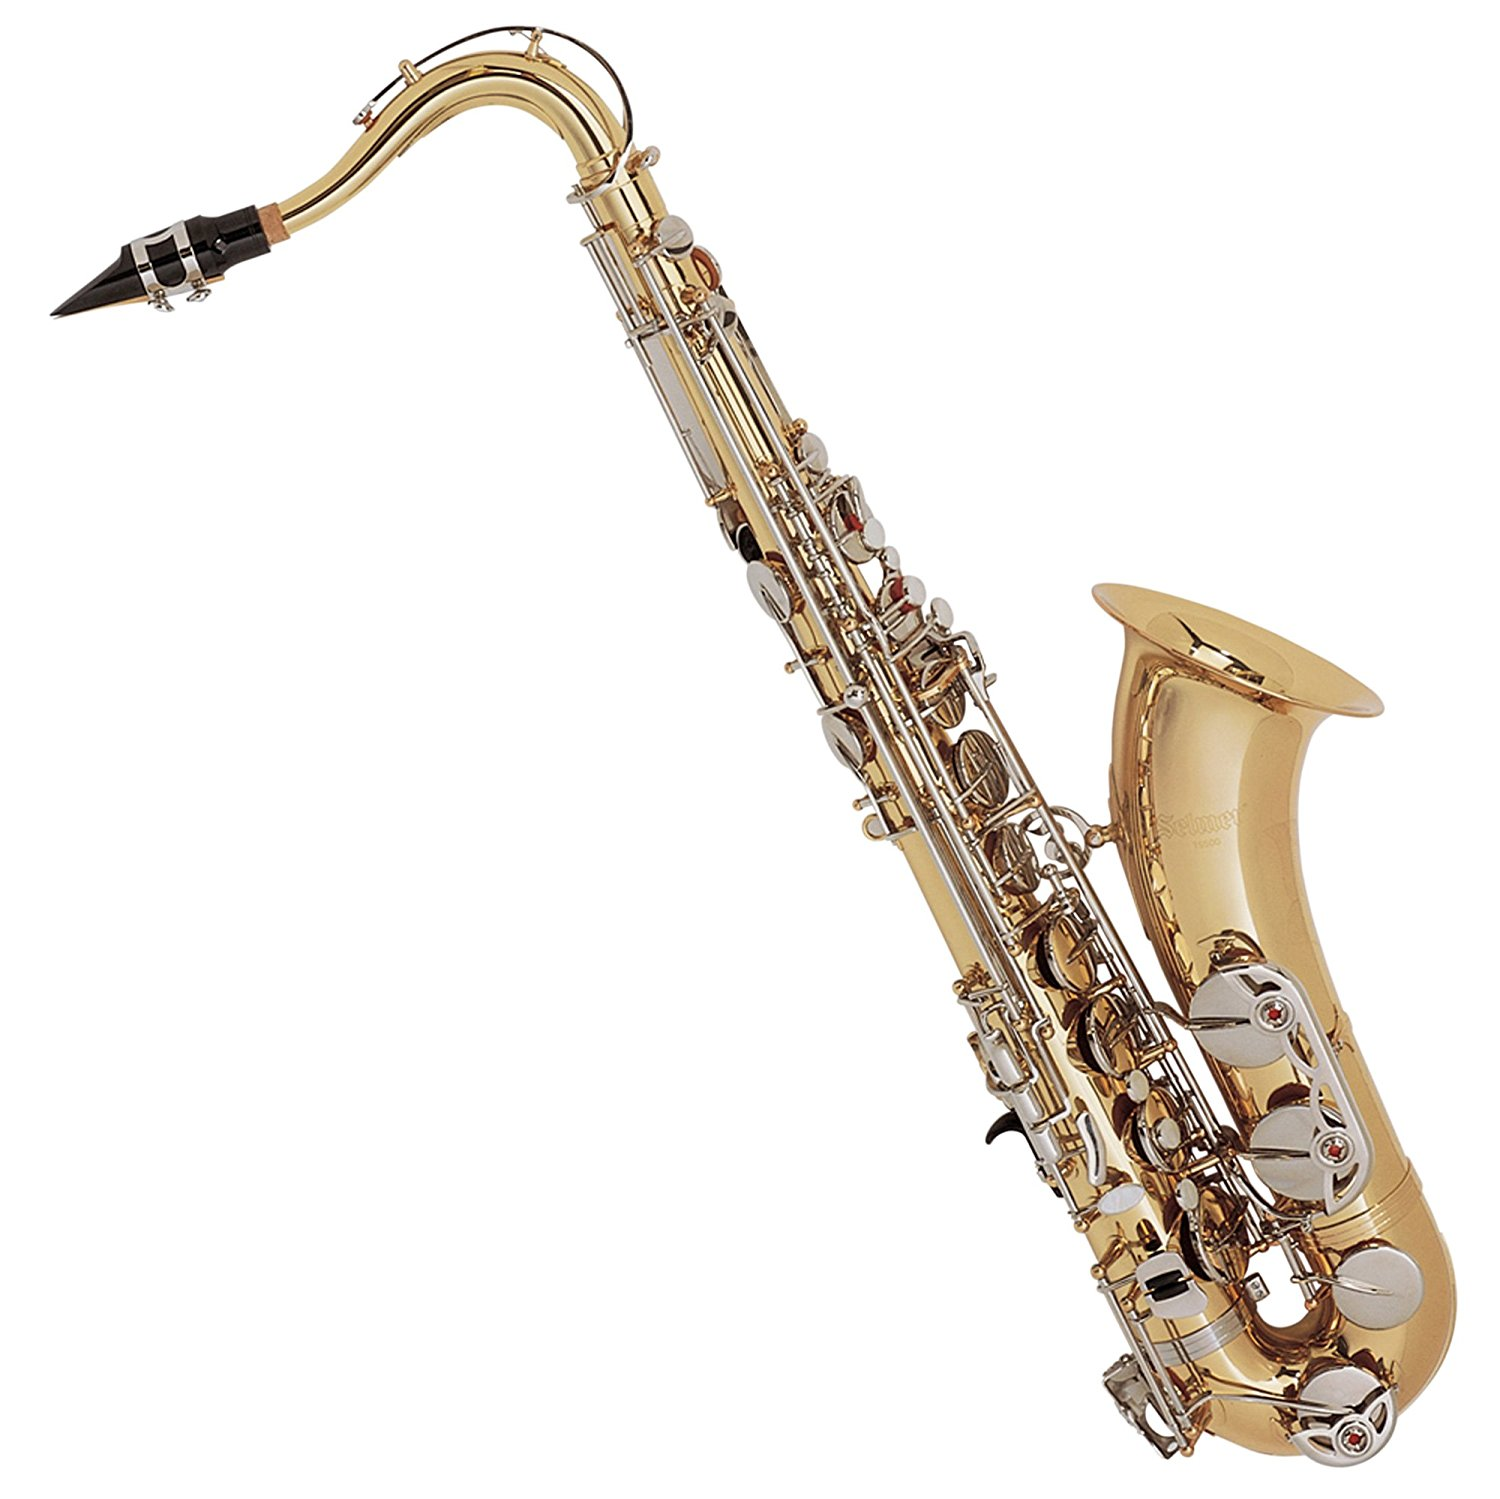 Re Lacquer Saxophone Cost